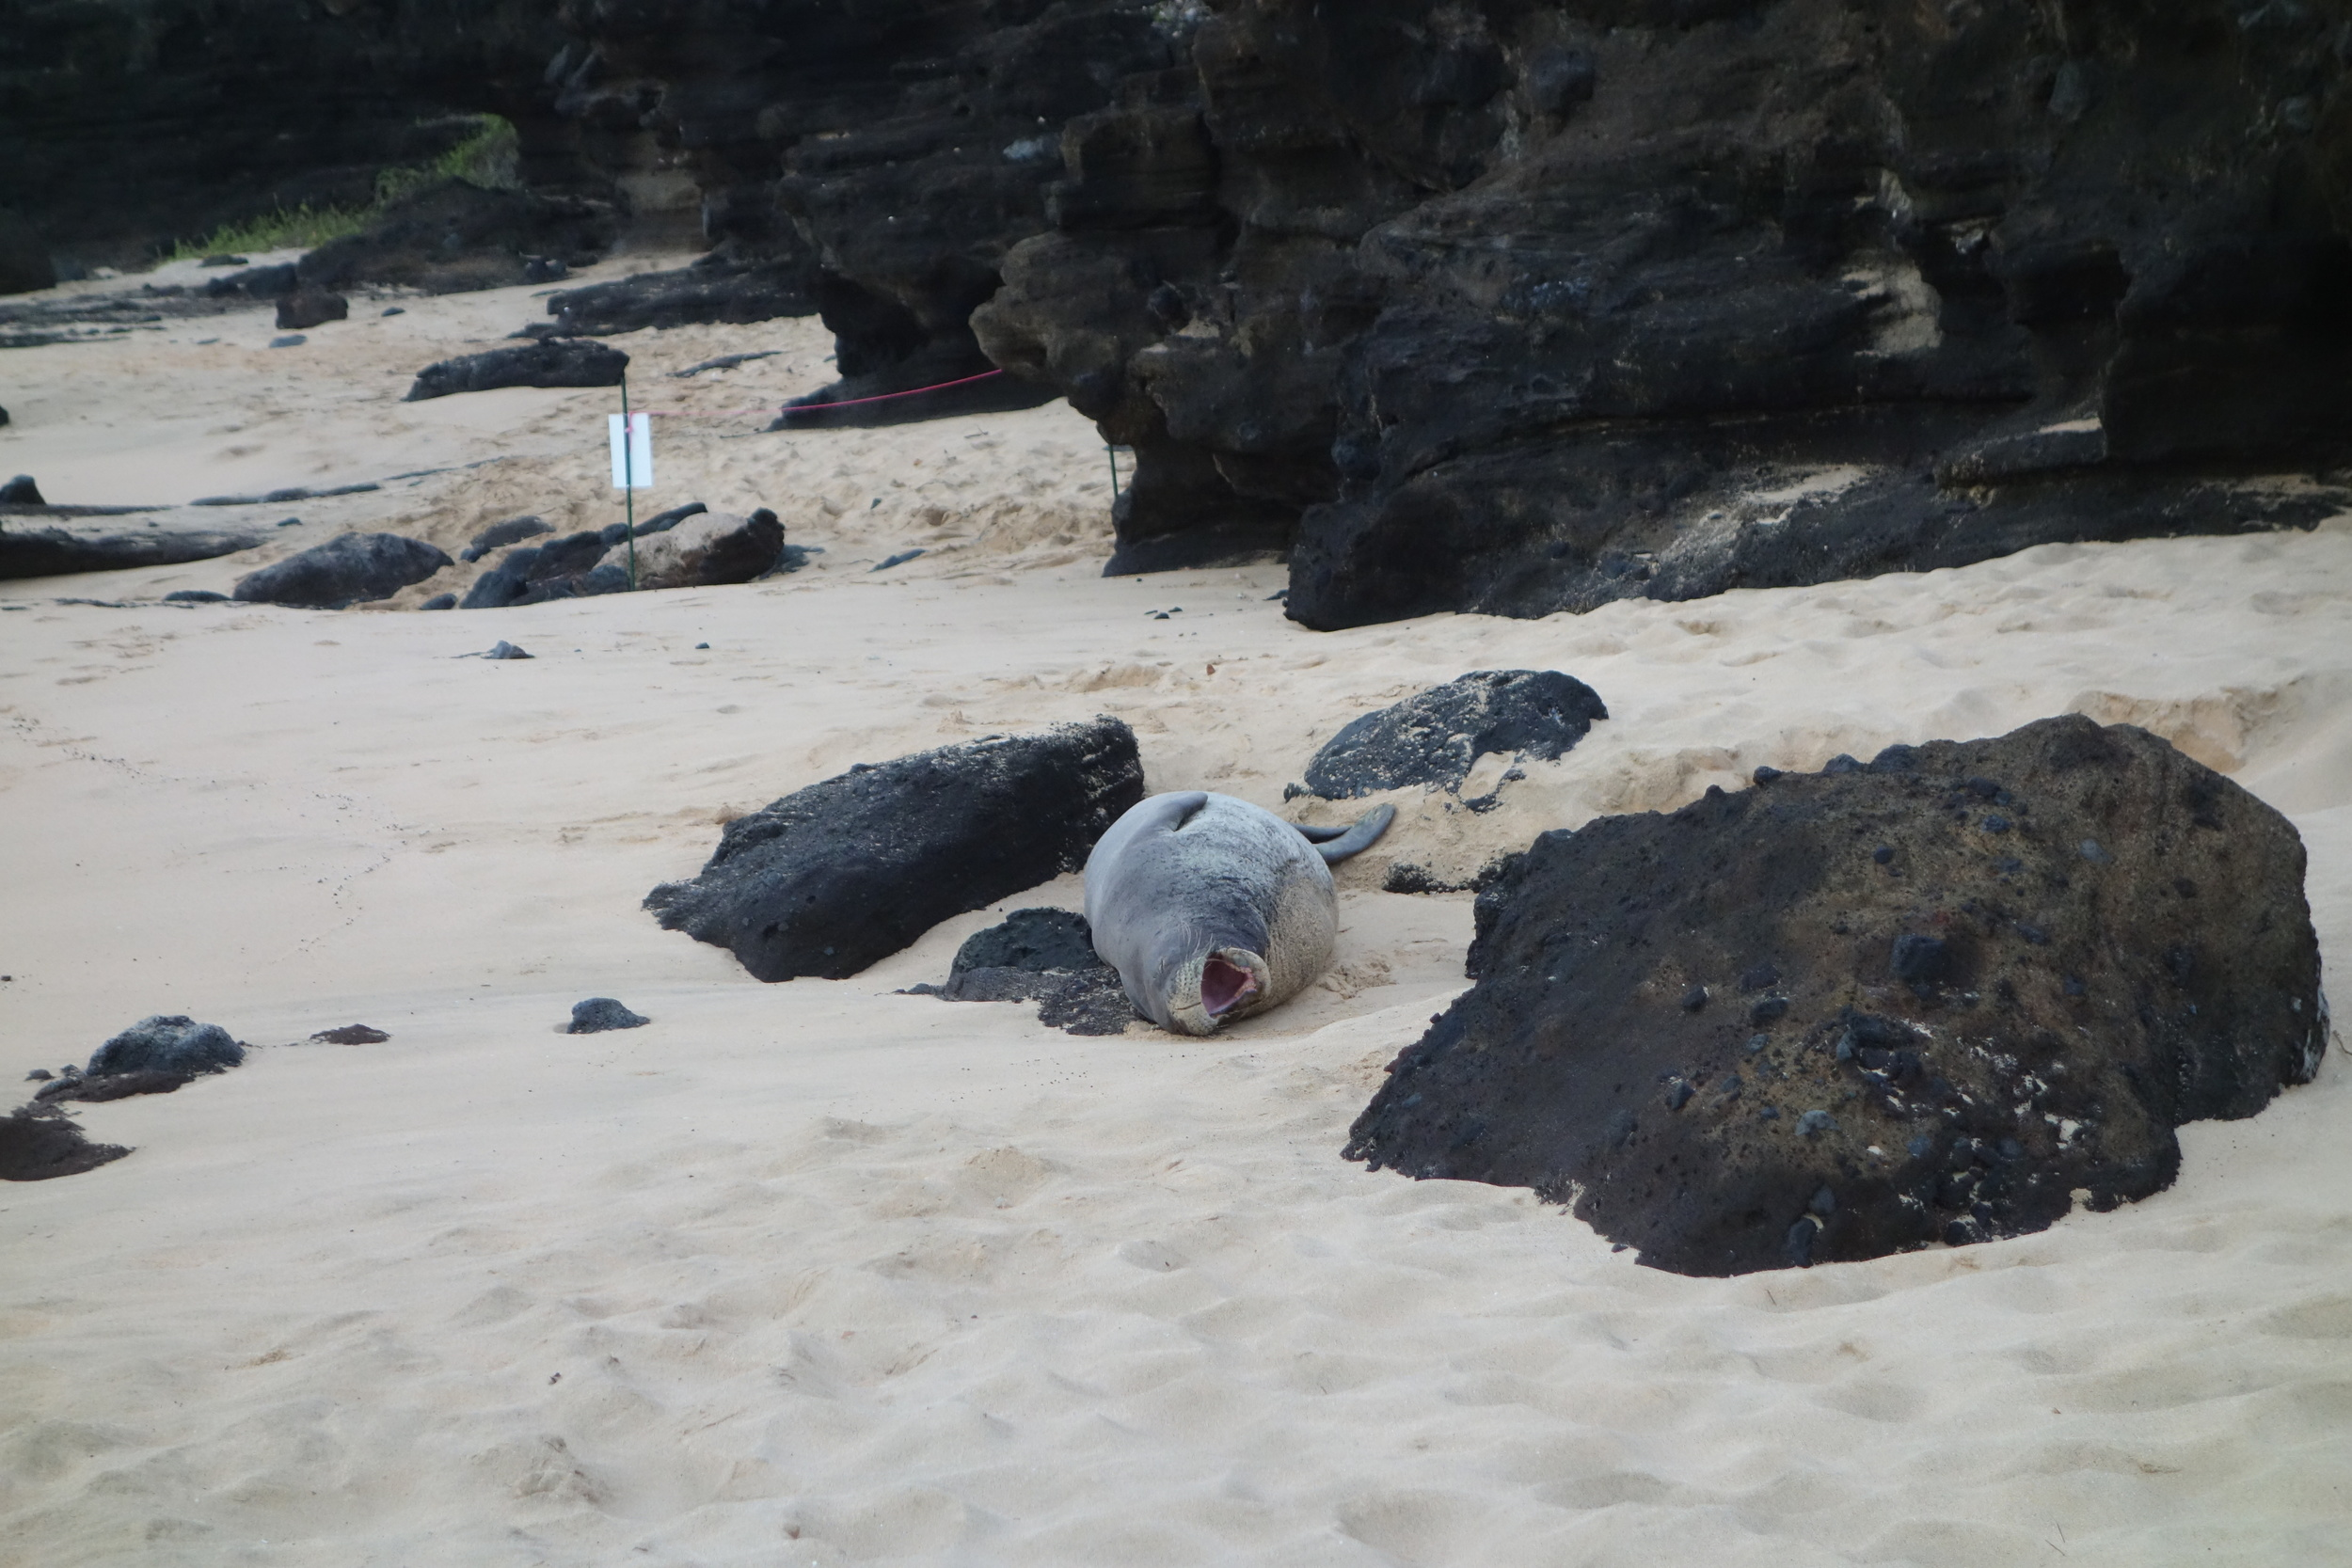 The highly endangered Hawaiian Monk Seal using a lava rock as its pillow. Sooo cool these guys!!